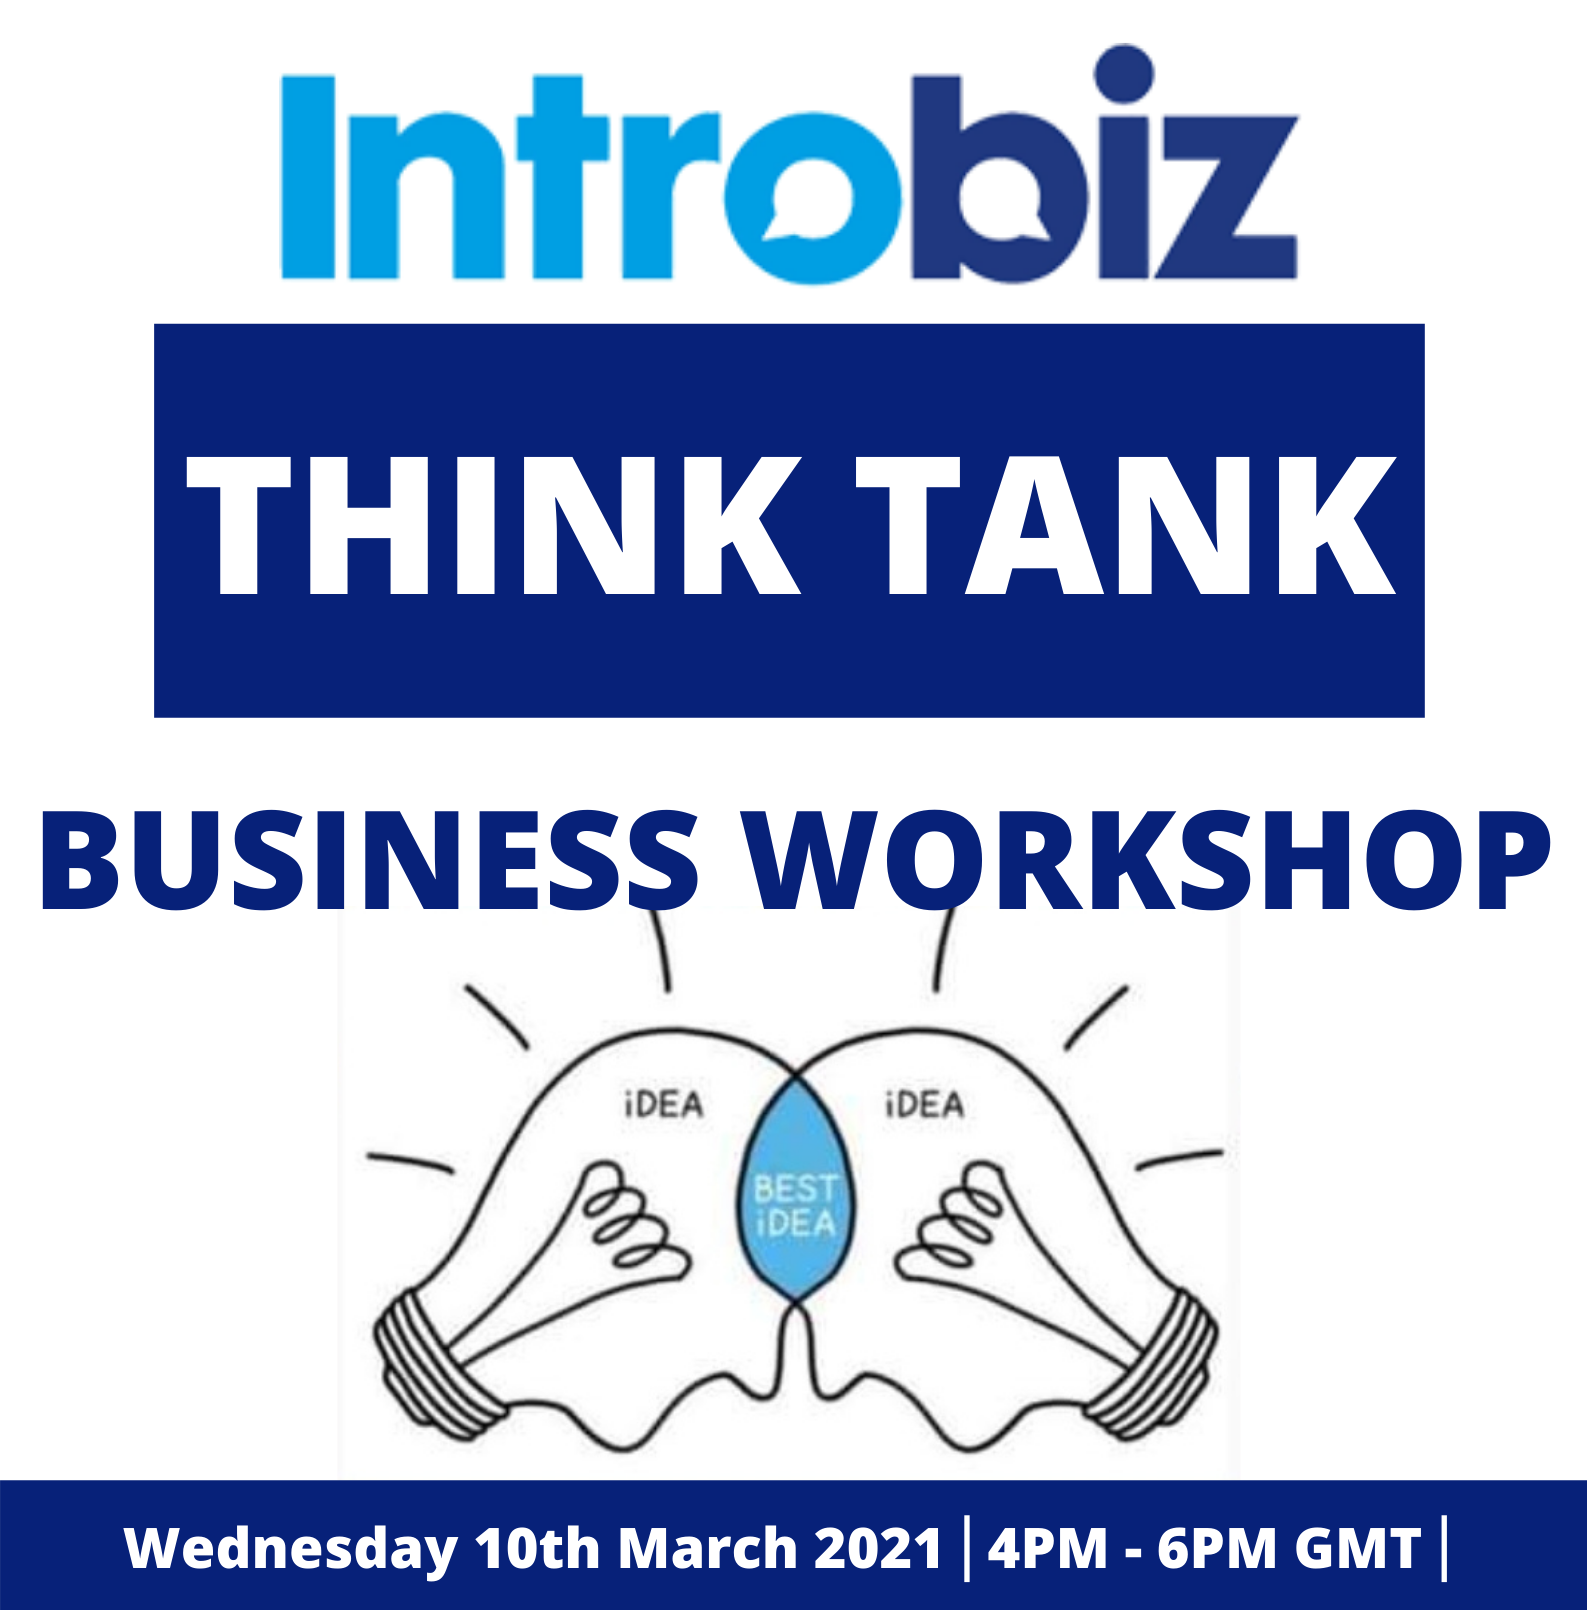 'Think Tank Business Workshop' Virtual Networking Event 10/03